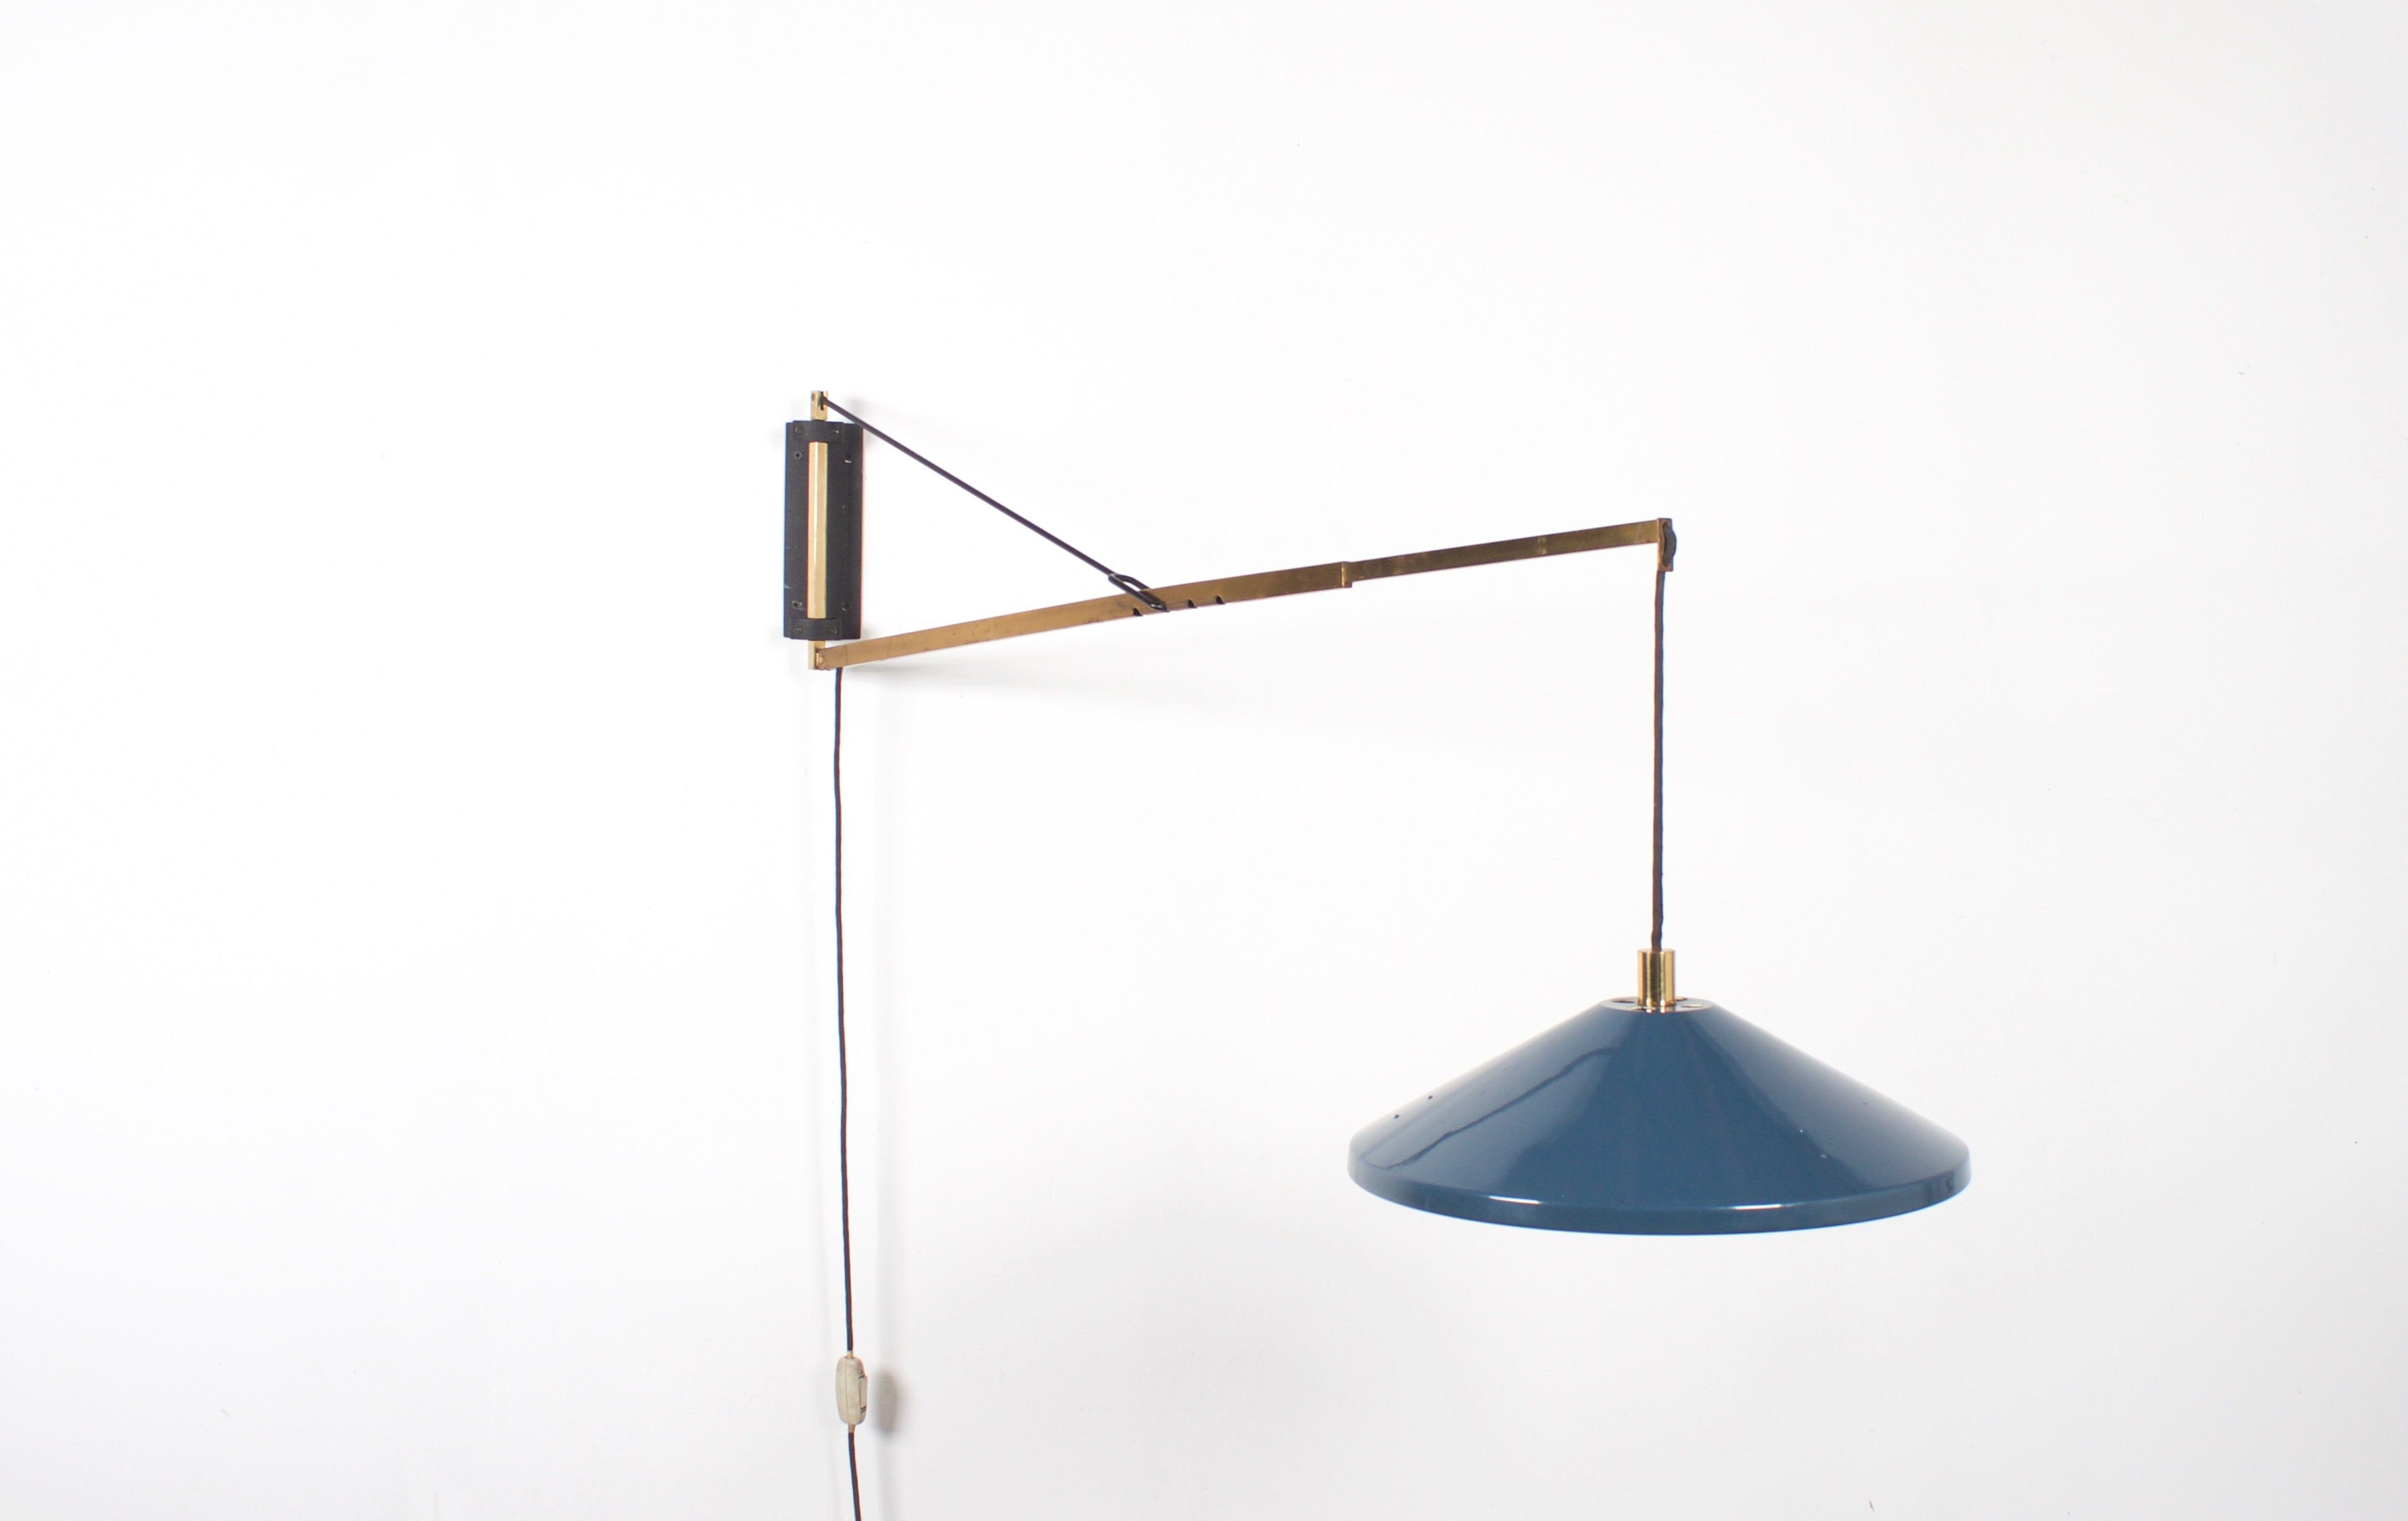 Very Rare Adjustable Stilnovo Wall Lamp Made in Italy – Cadmium